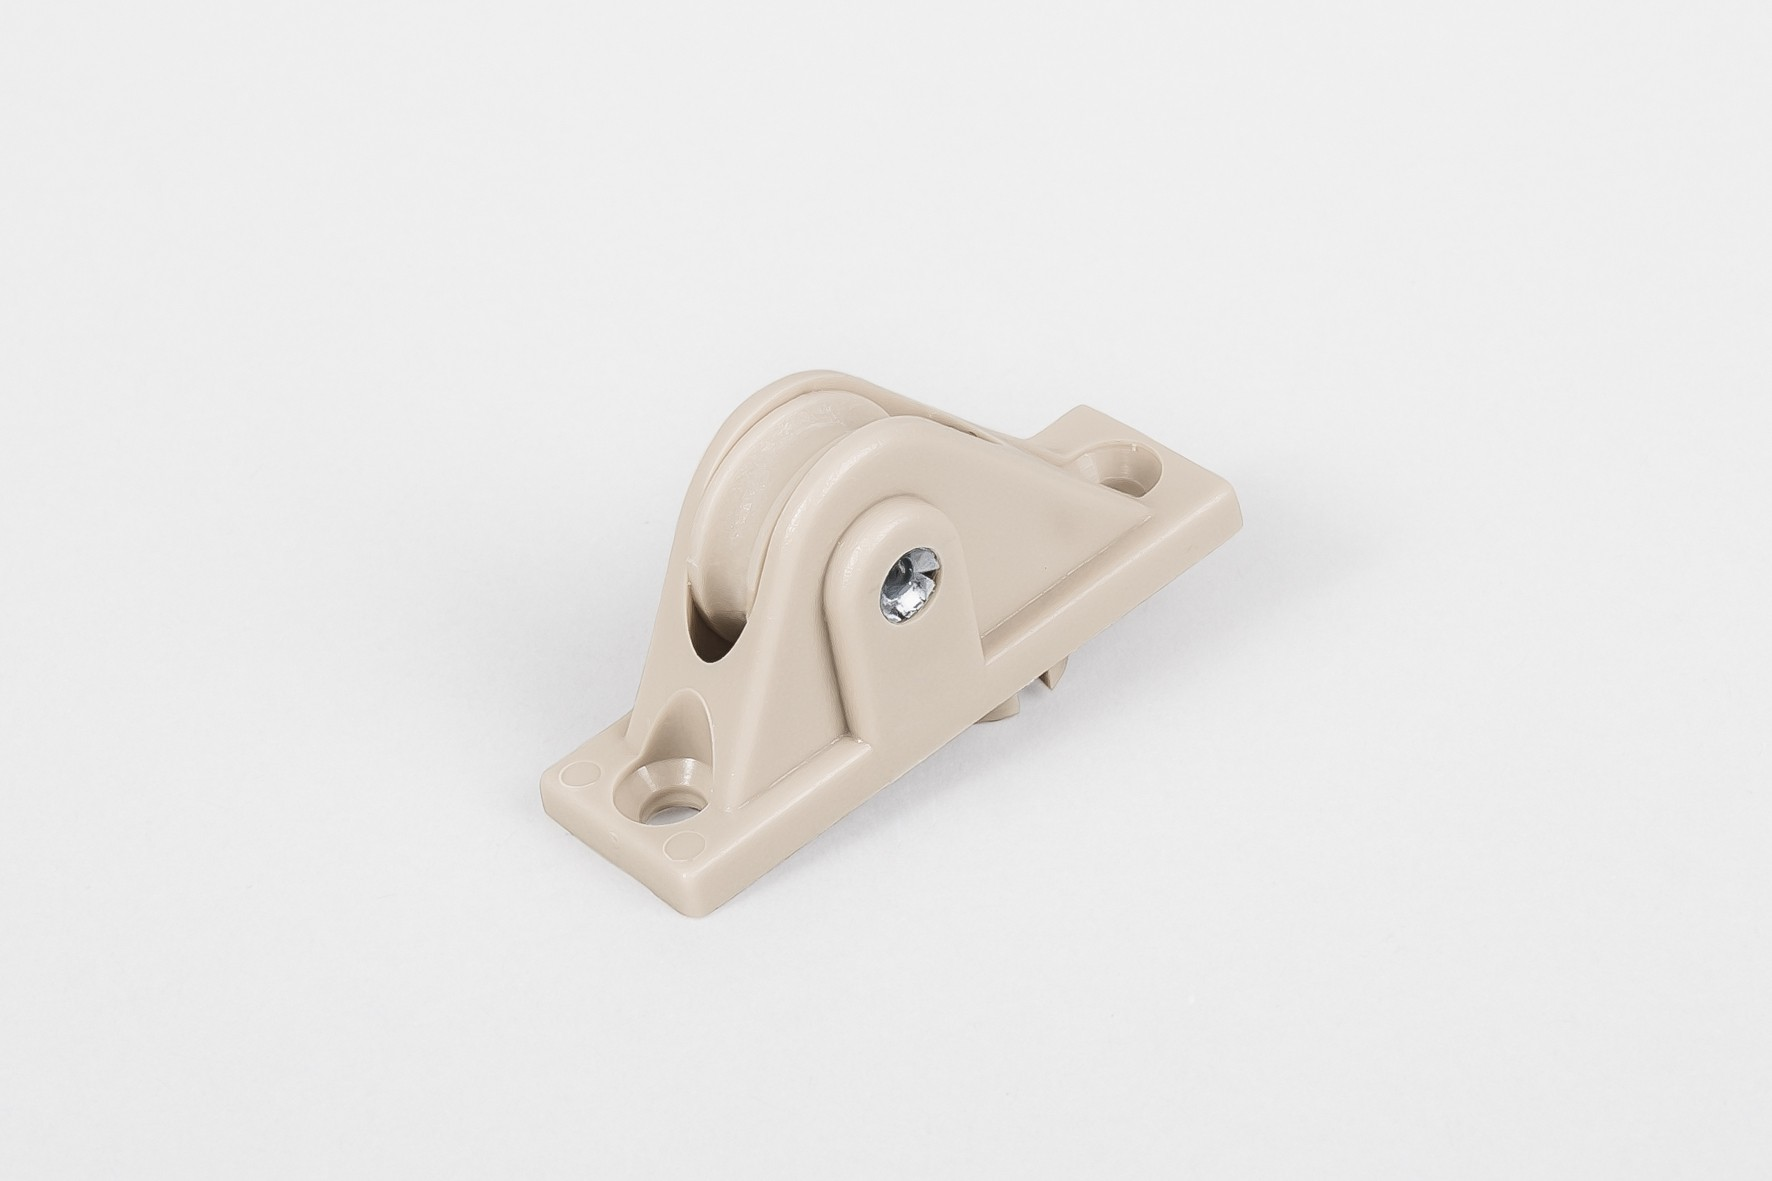 PVC guiding roller for rope without brush and spring, beige